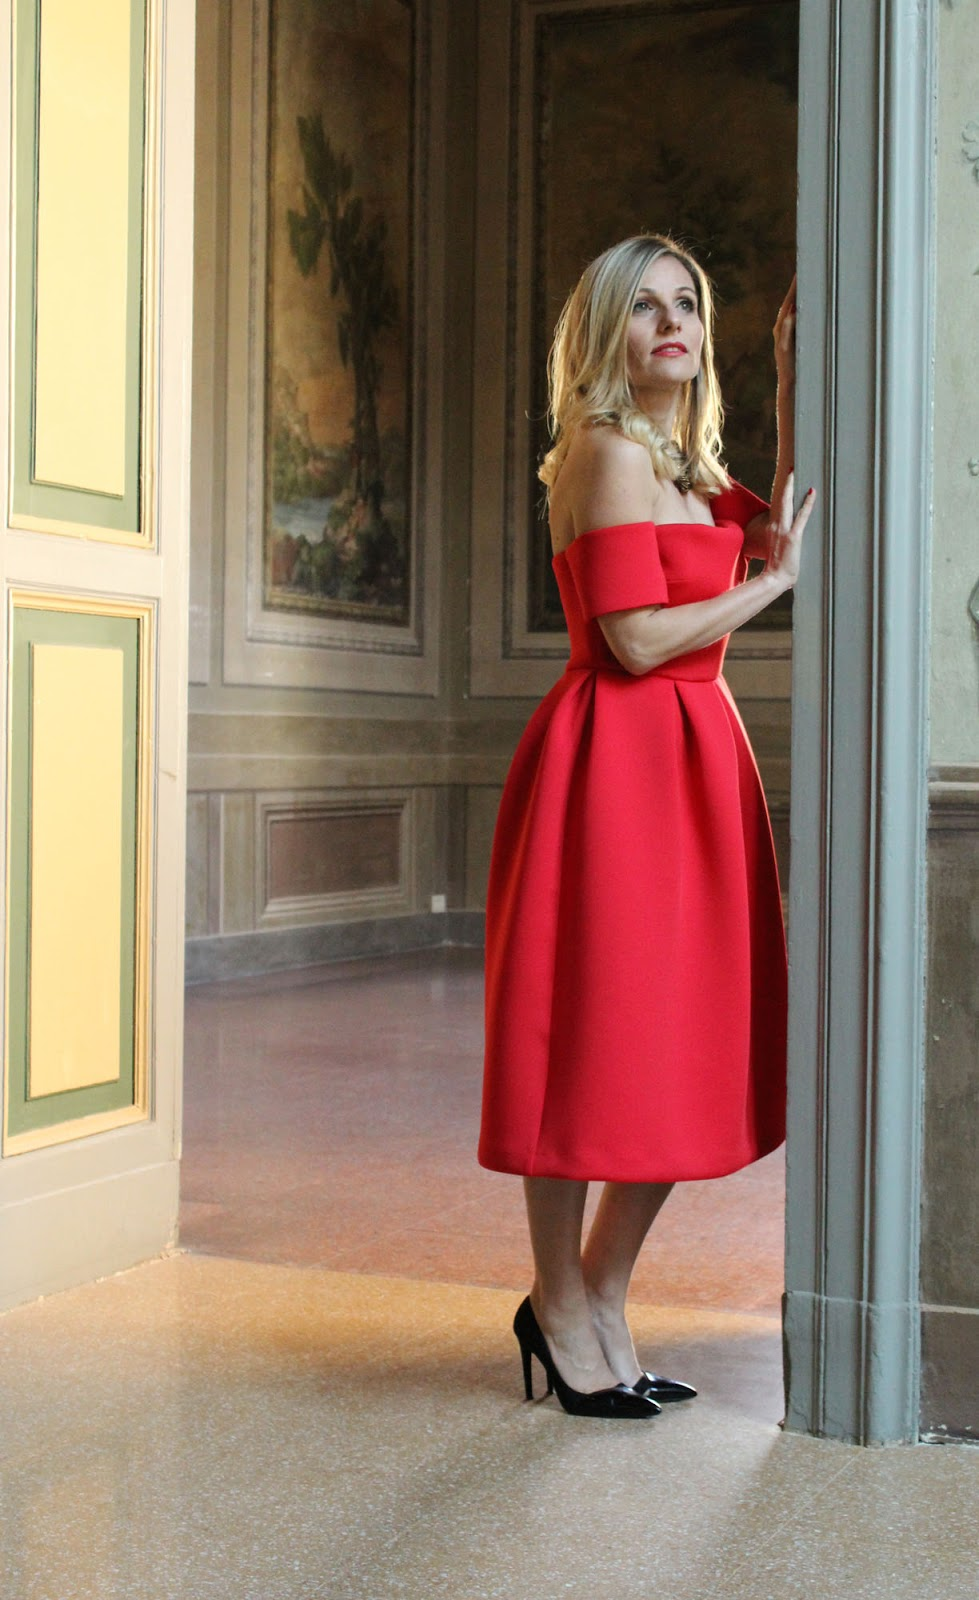 Eniwhere Fashion - Sheinside red dress